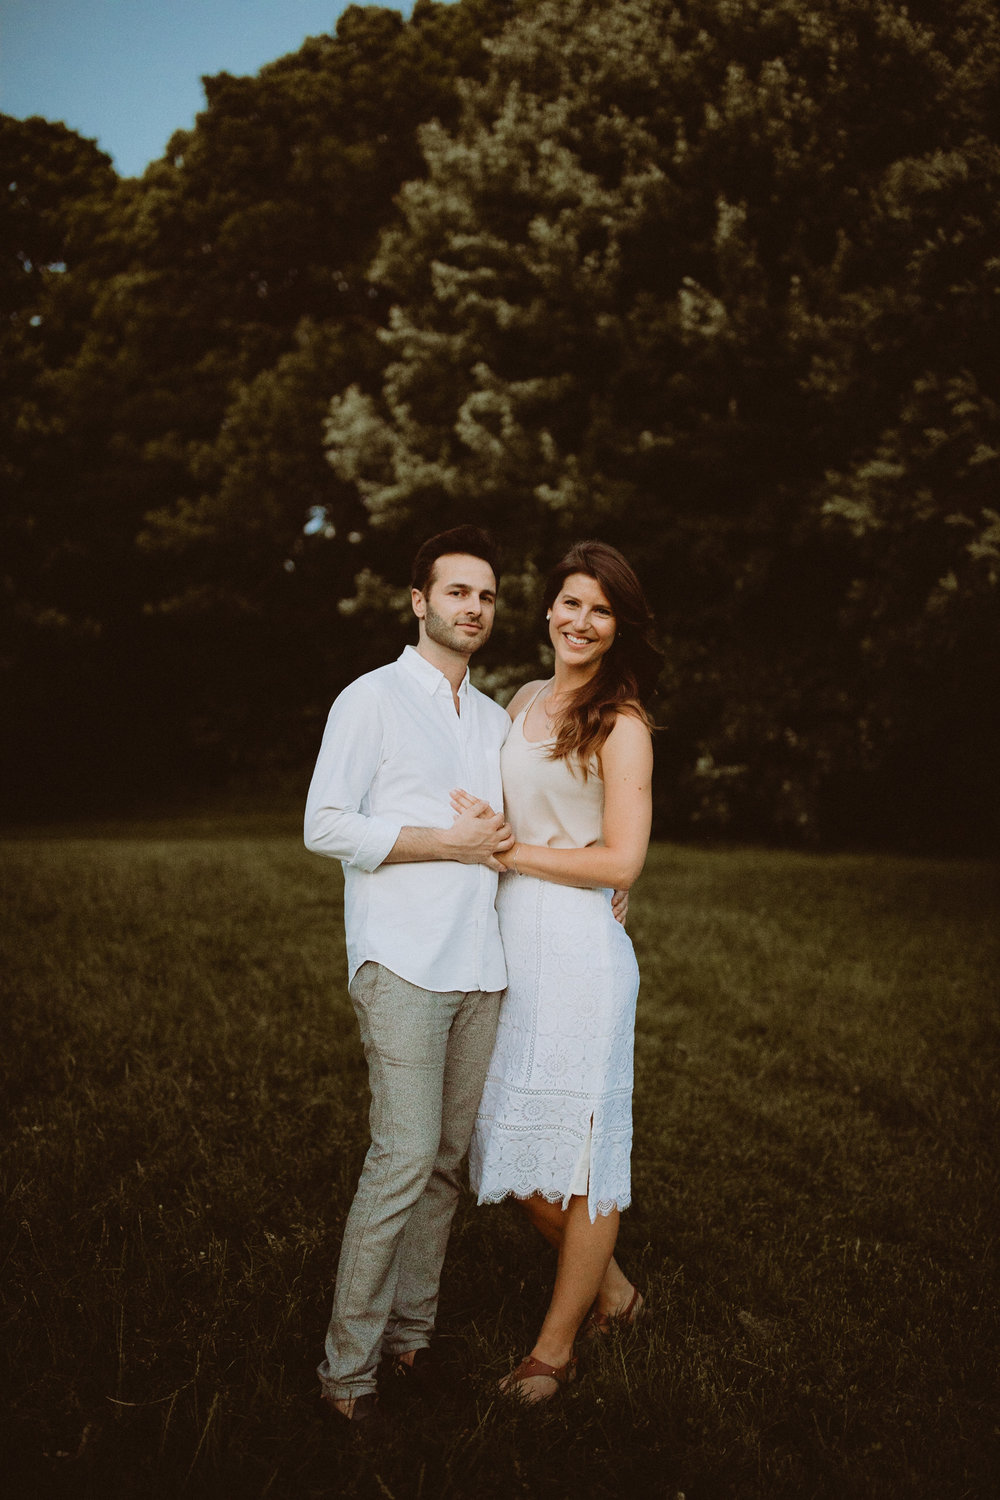 prospect park engagement session (21 of 25).jpg